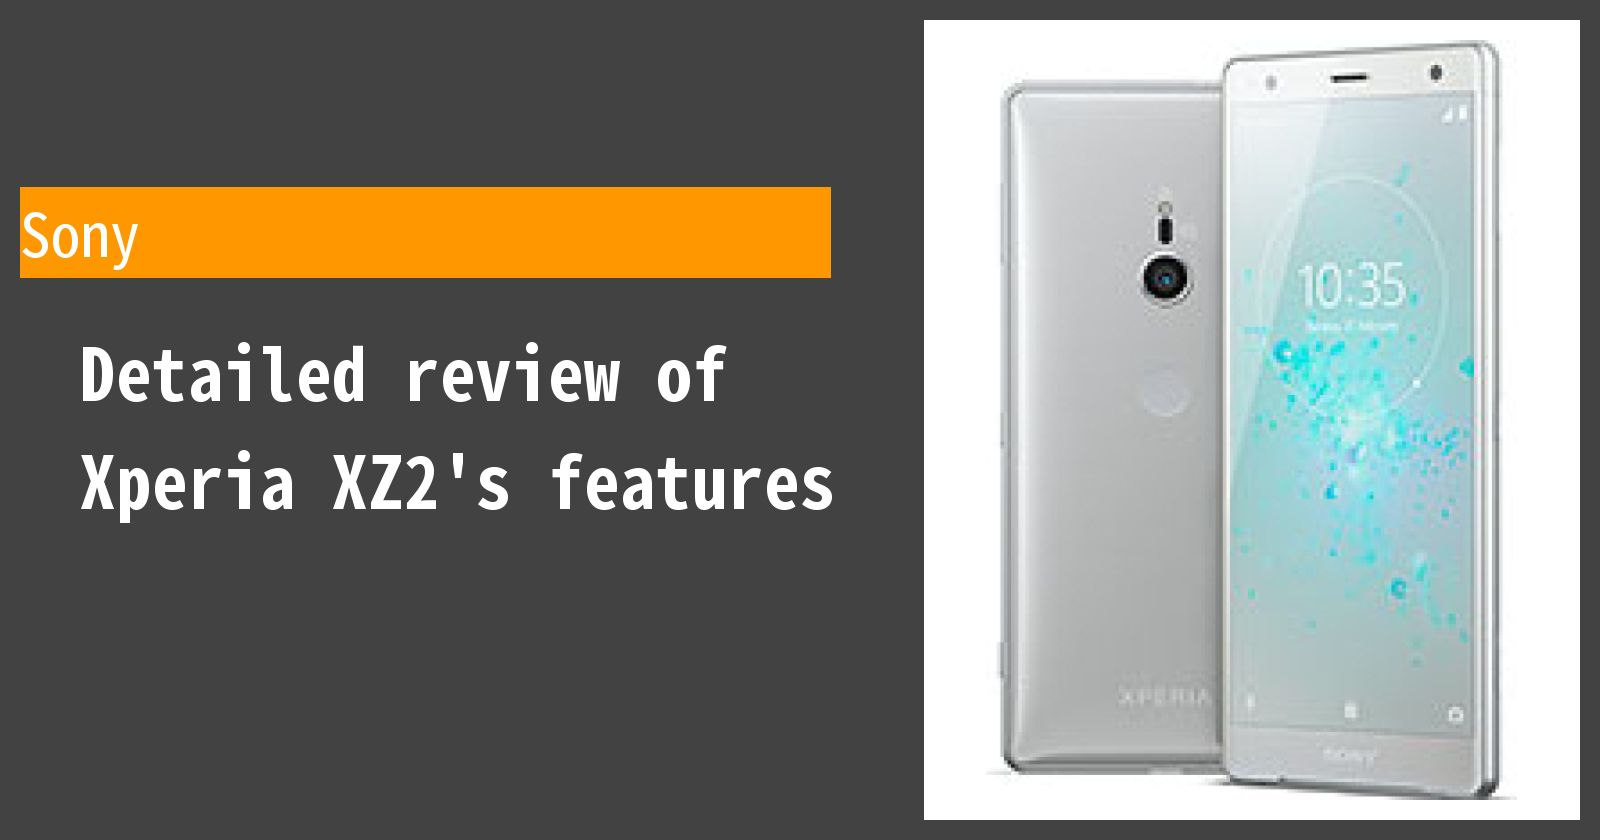 Detailed review of Xperia XZ2's features